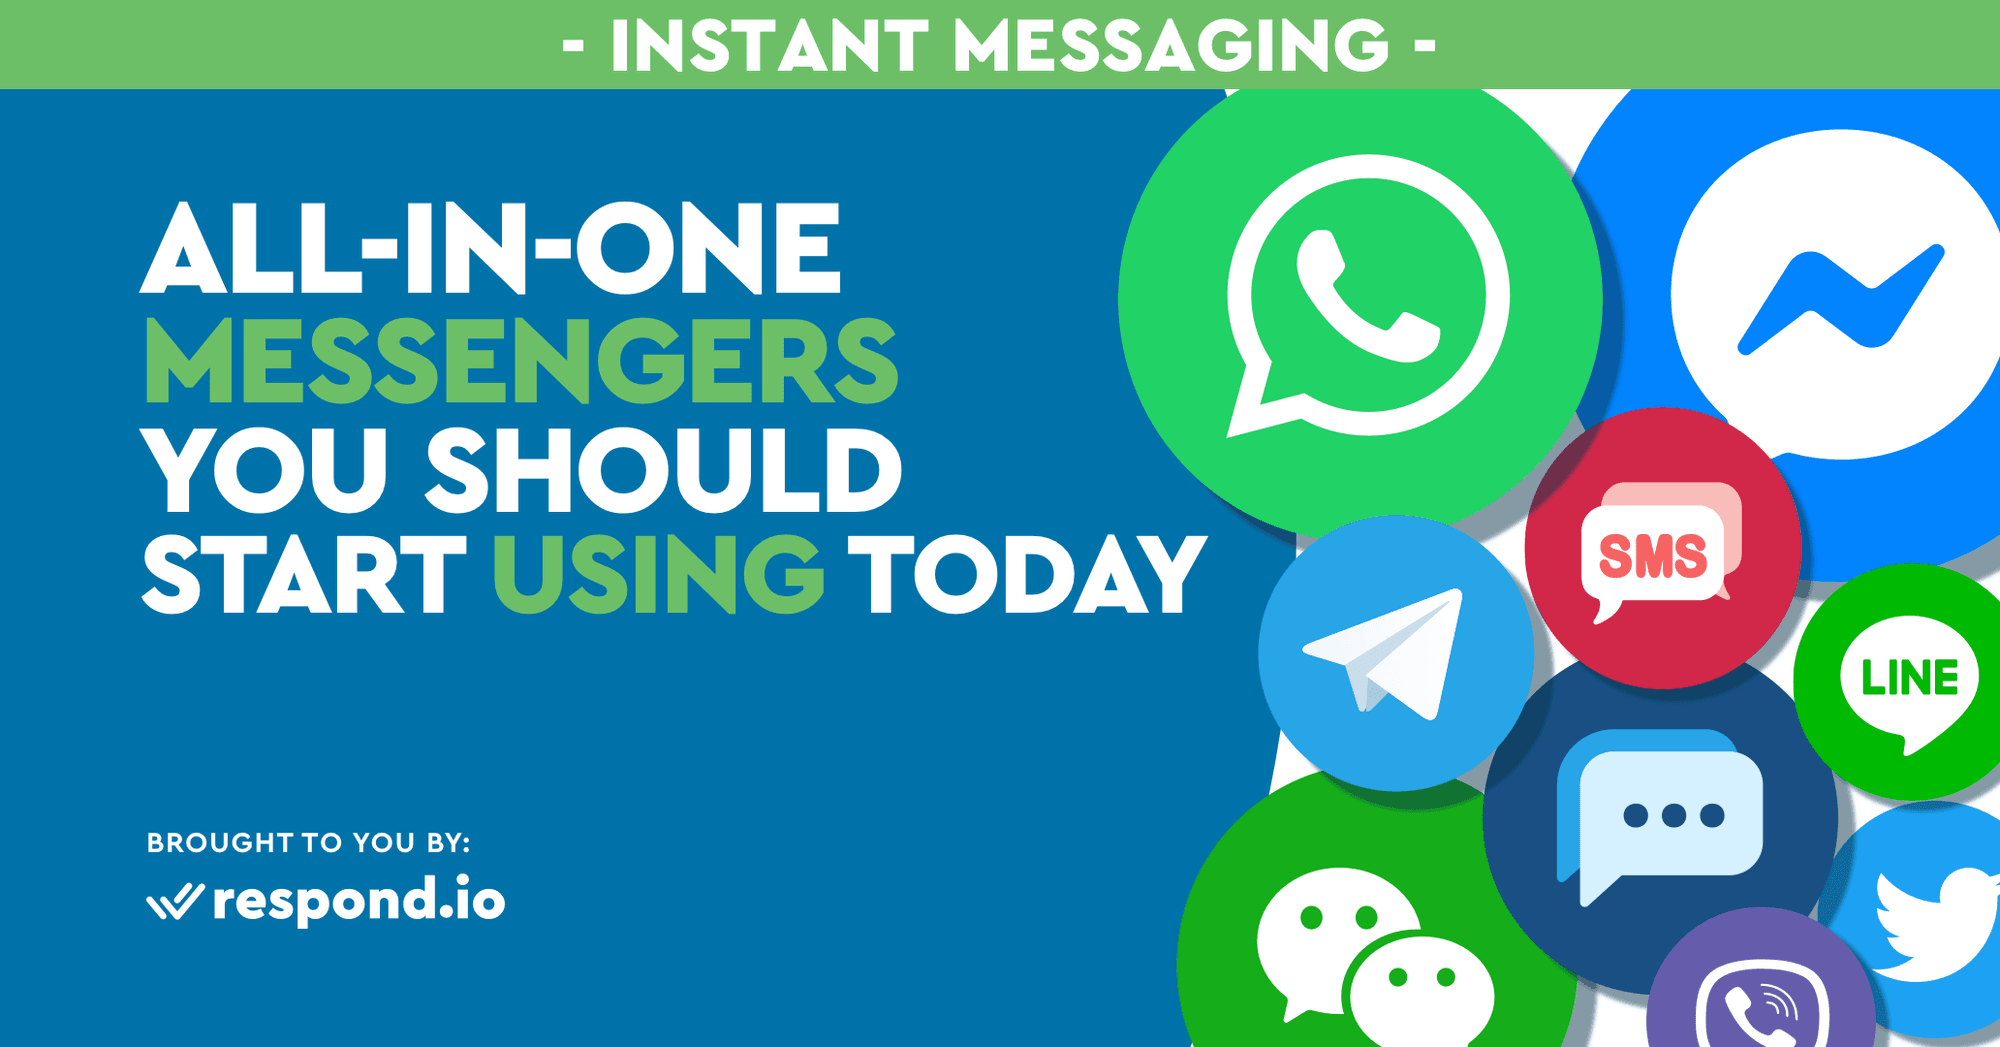 All-in-One Messengers You Should Start Using Today